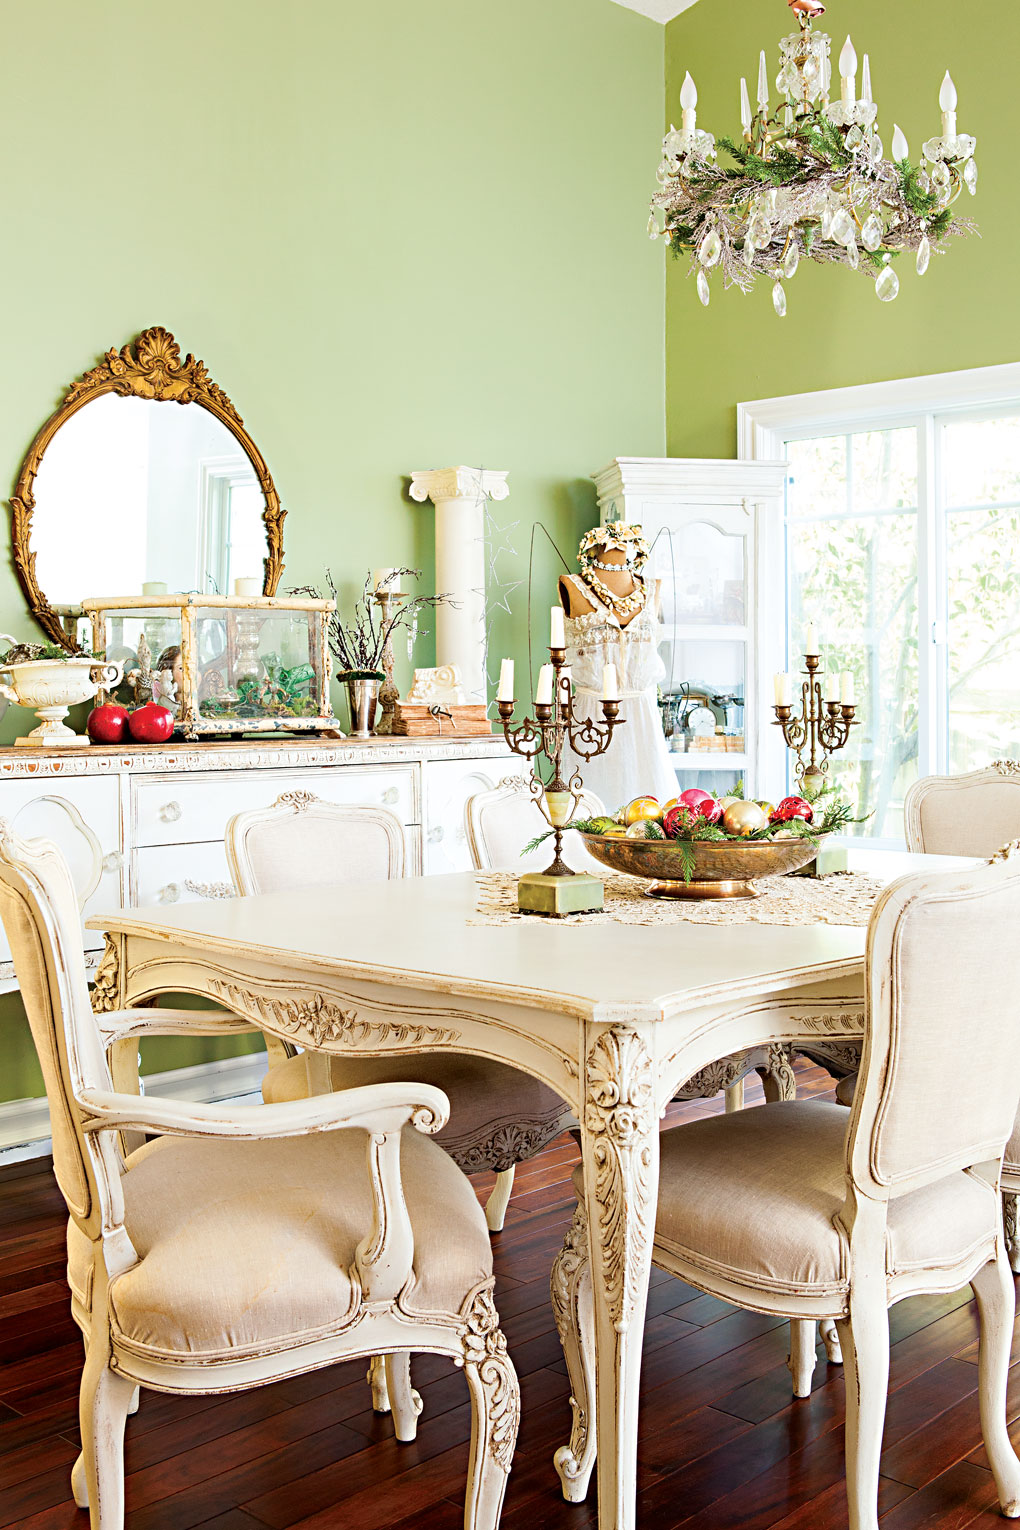 Light green walls surround a vintage white dining set with a hutch behind it.